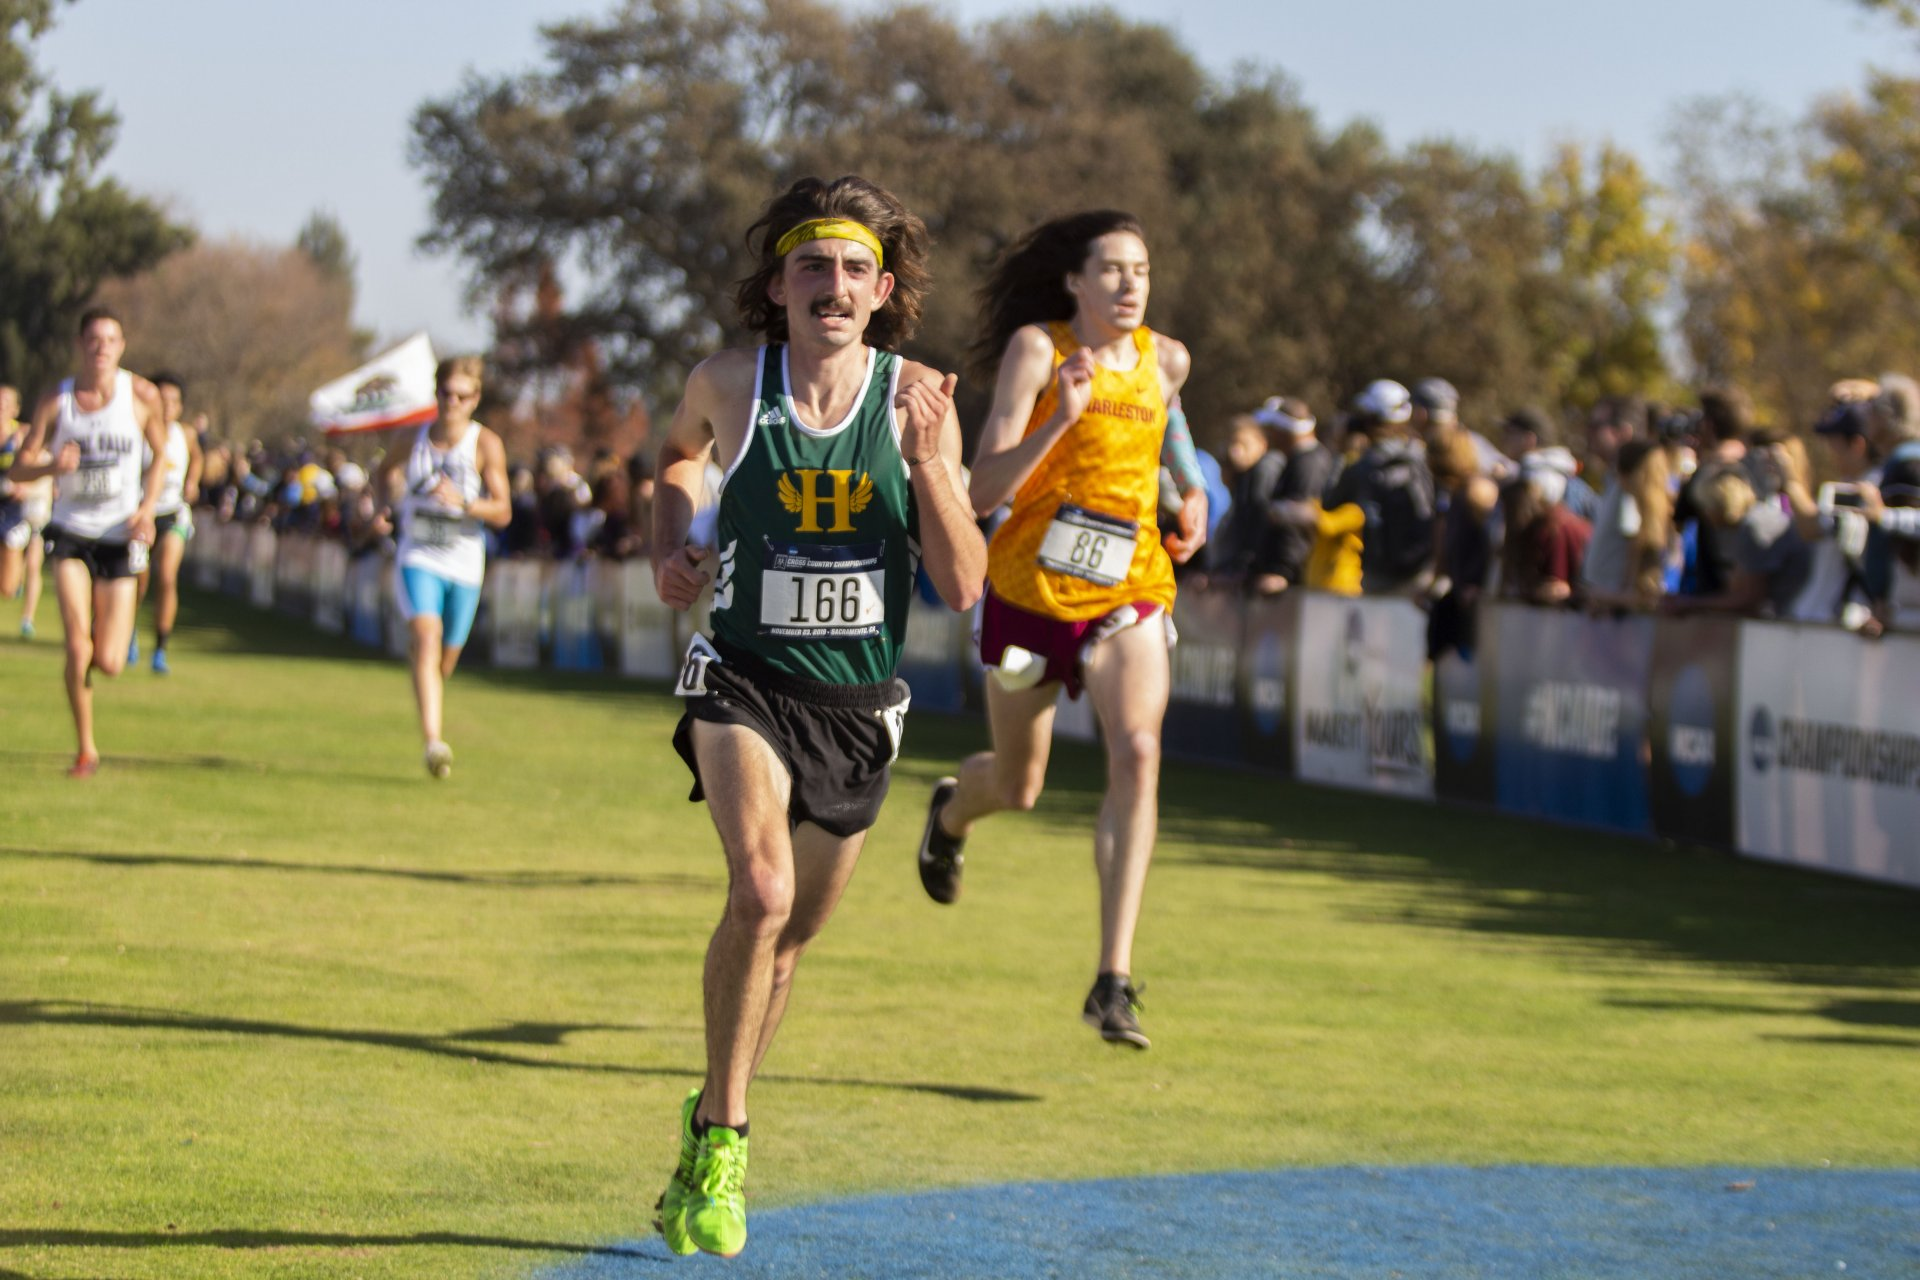 Humboldt State senior Daniel Tull surges toward the finish line for a 56th place result at the NCAA Division II Cross Country Championship at Arcade Creek Cross Country Course in Sacramento on November 23. | Photo by Thomas Lal